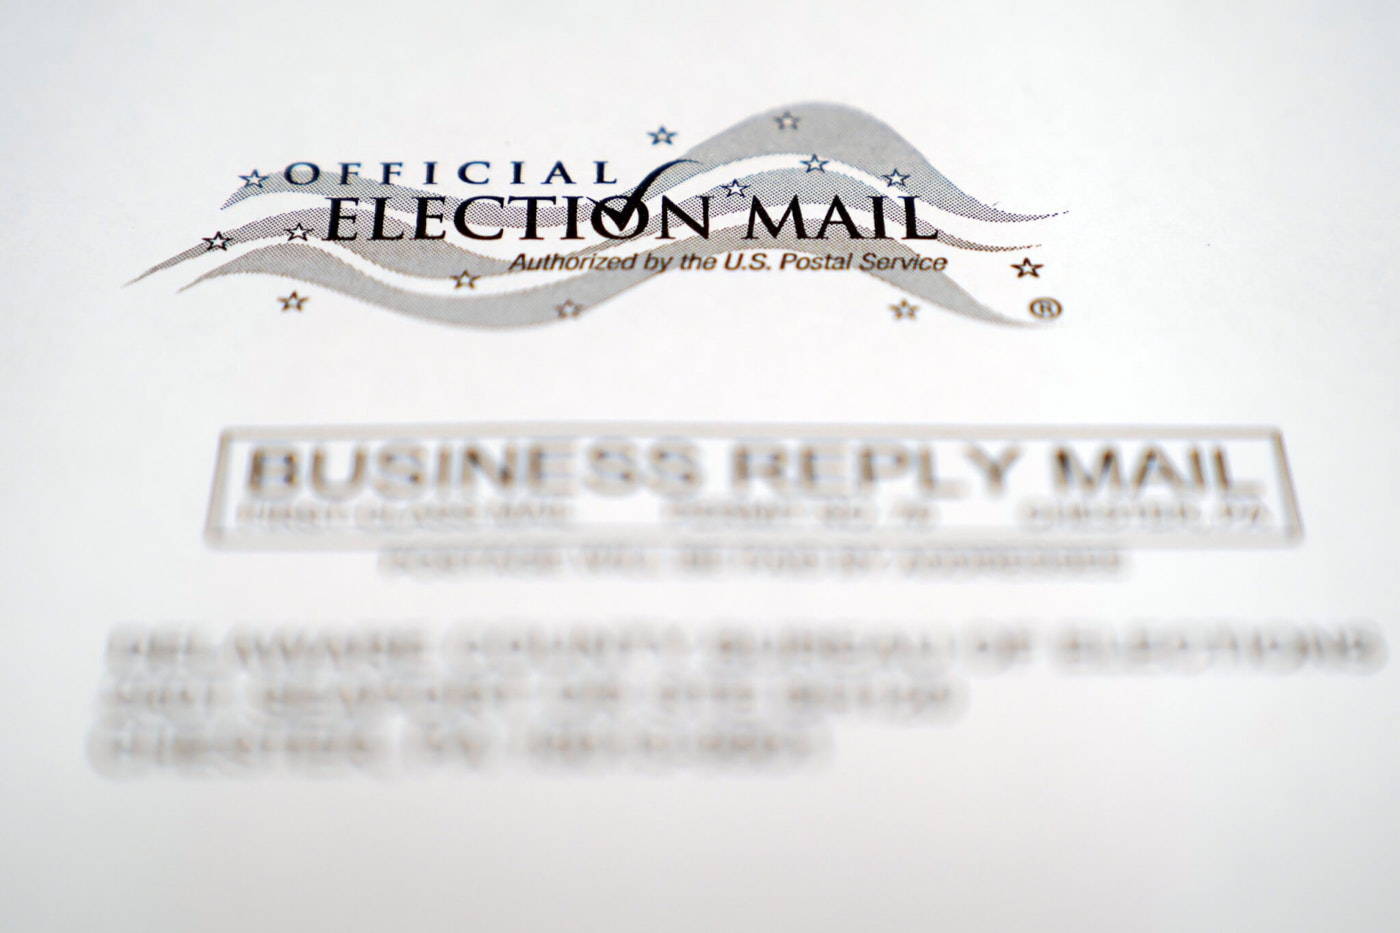 An envelope of a Pennsylvania official mail-in ballot for the 2020 general election is shown, Tuesday, Oct. 13, 2020, in Marple Township, Pa. (AP Photo/Matt Slocum)